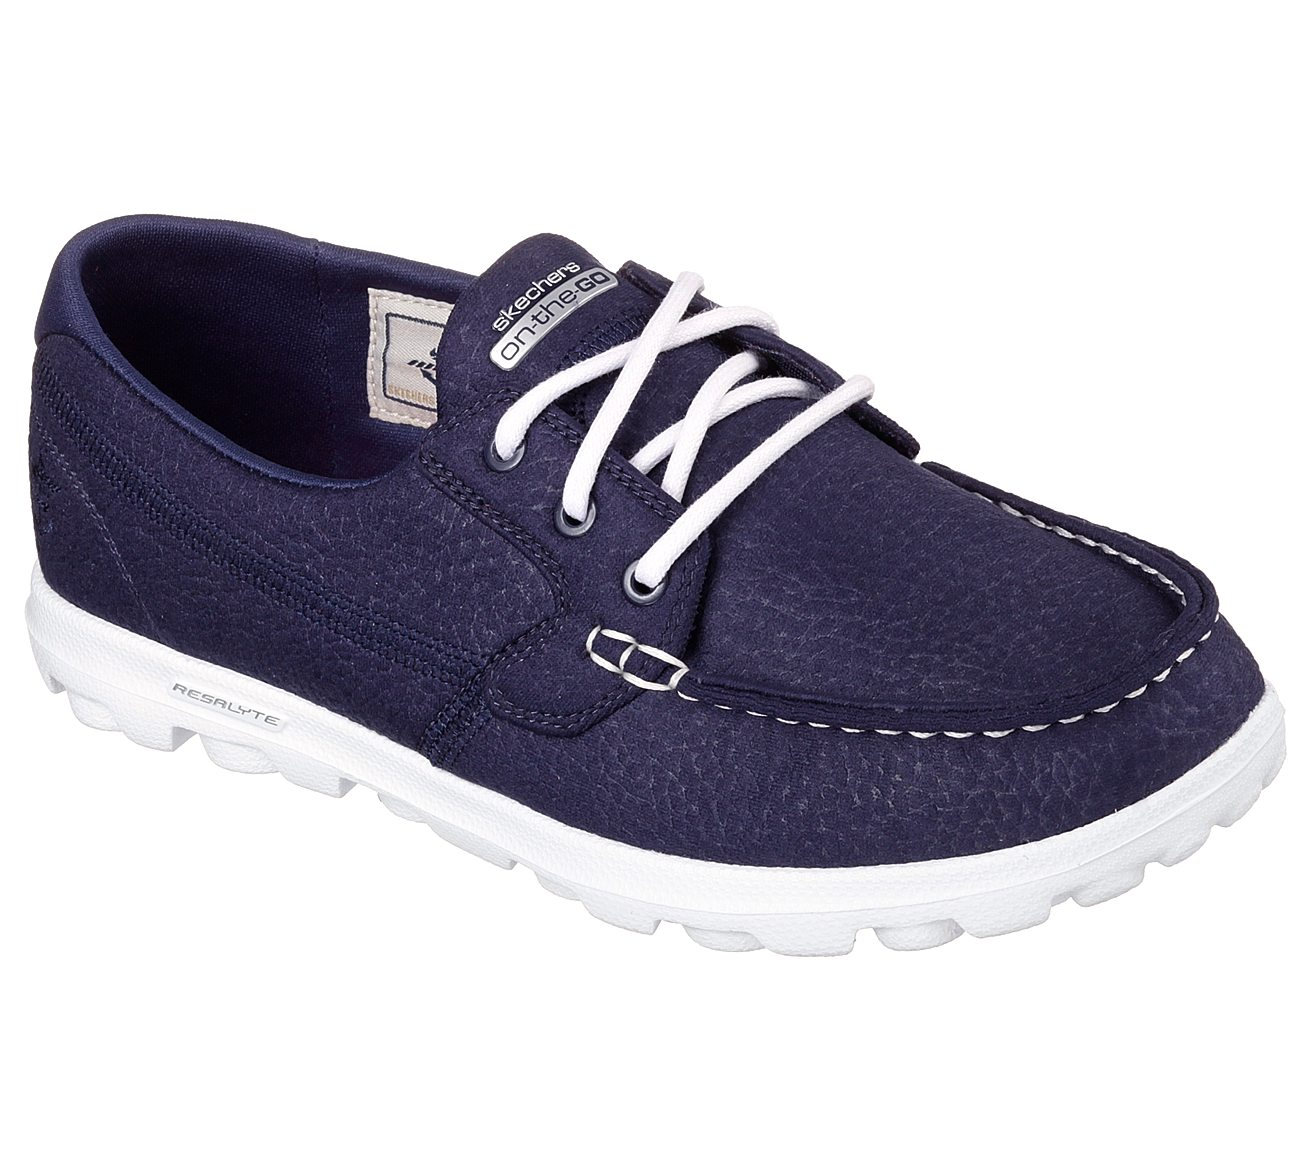 skechers on the go boat shoes